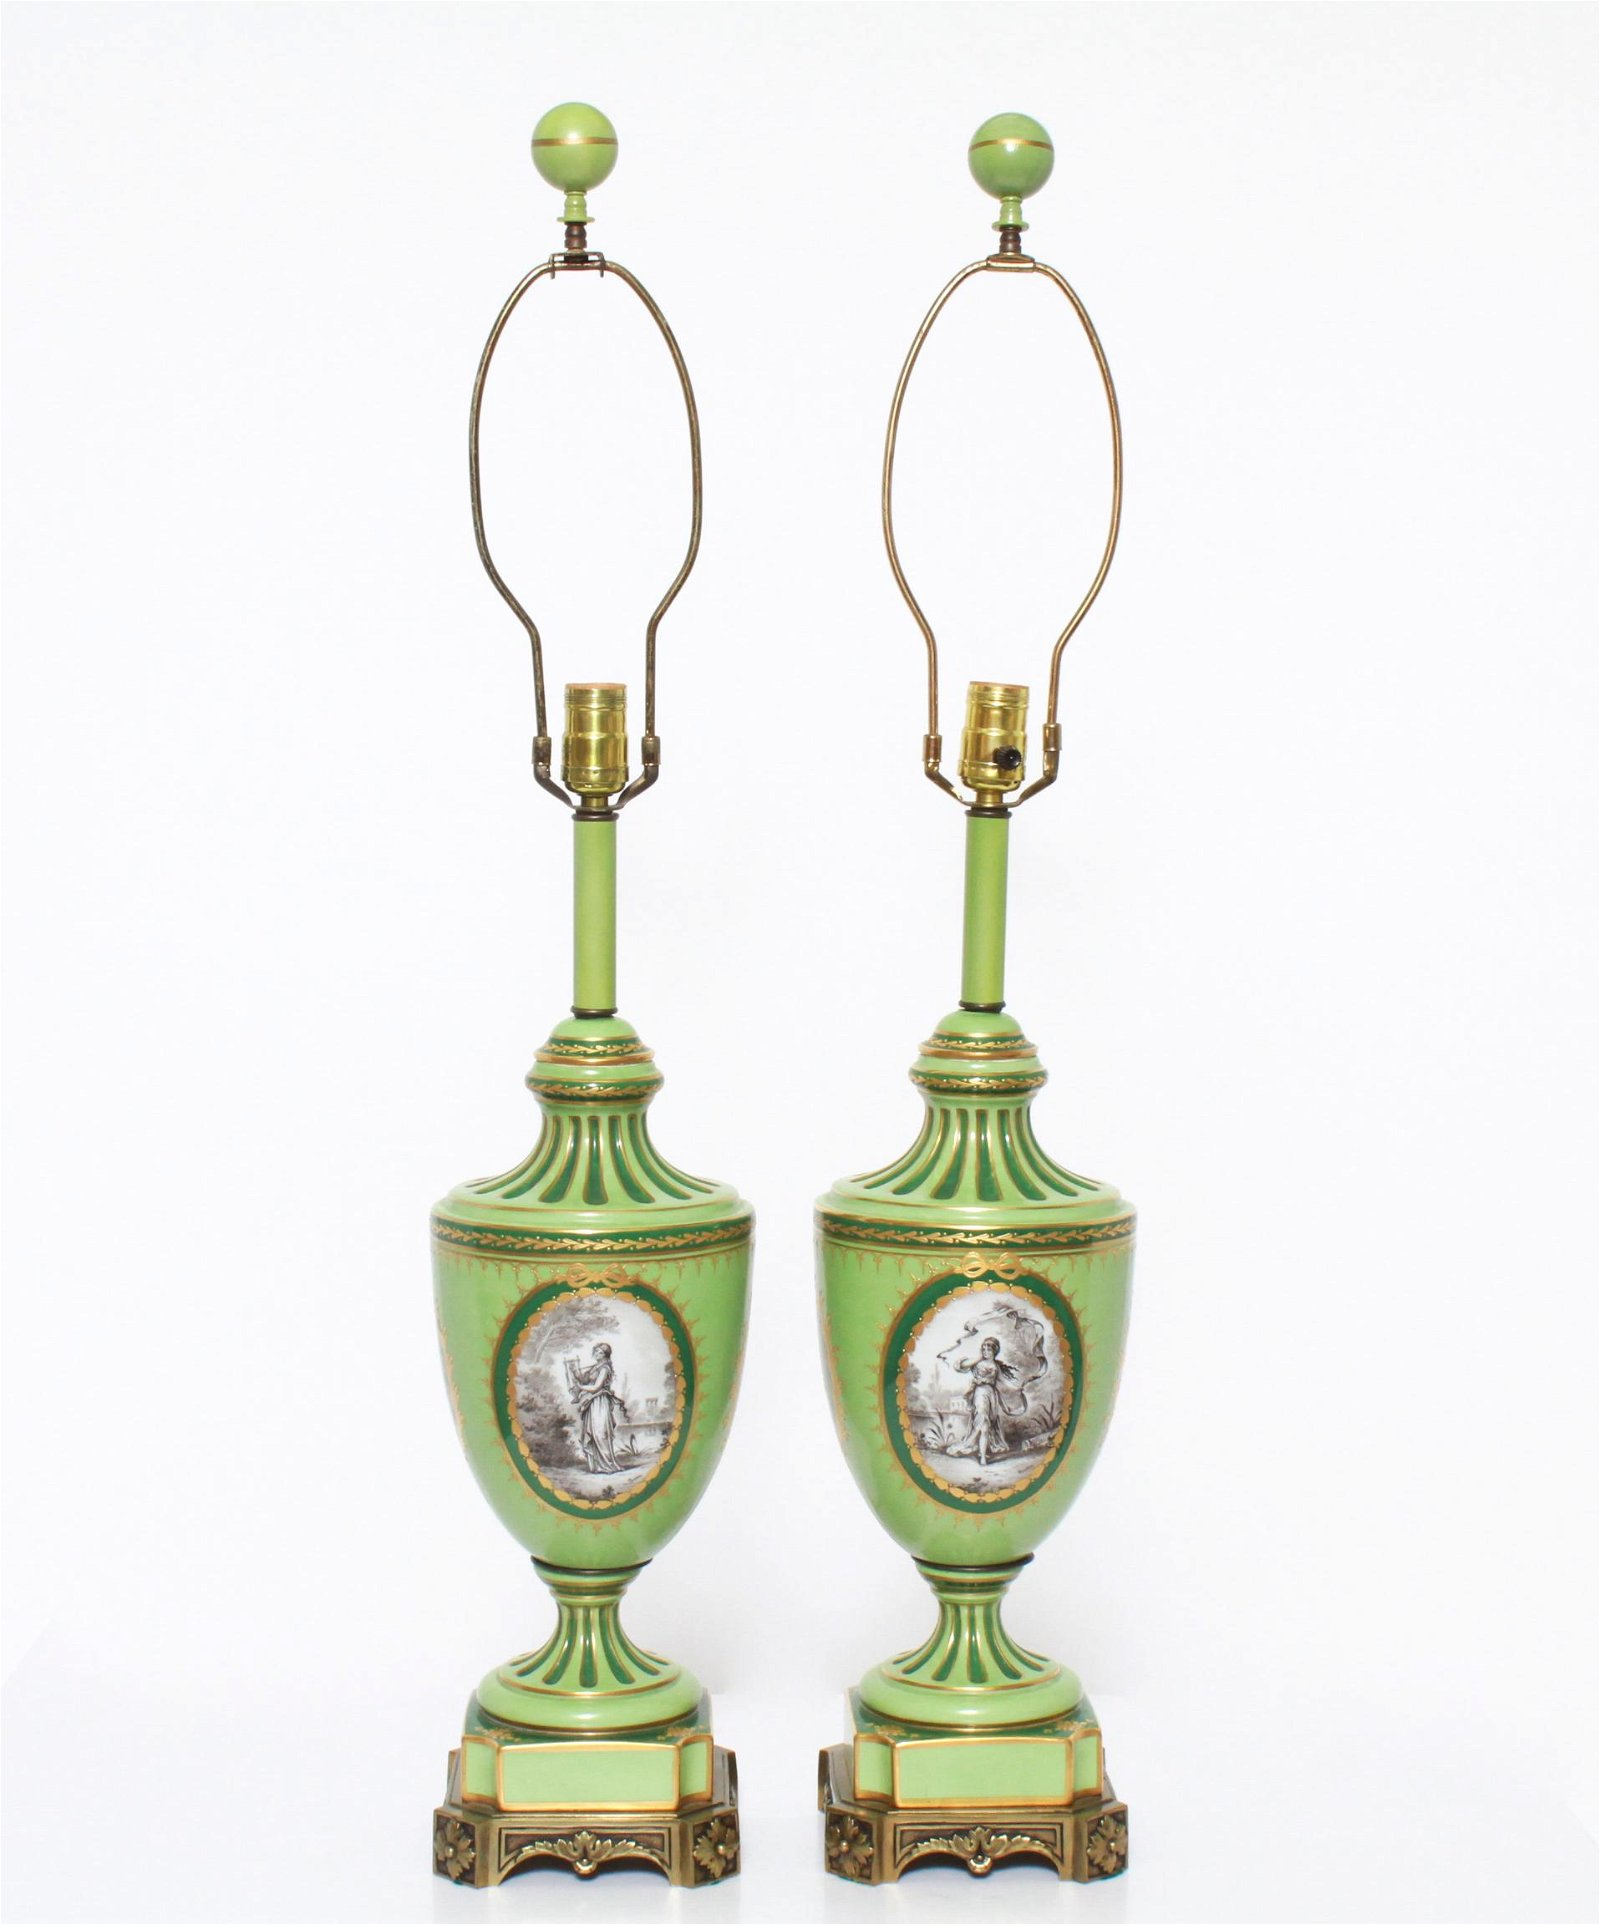 Neoclassical Manner Porcelain & Bronze Lamps, Pr